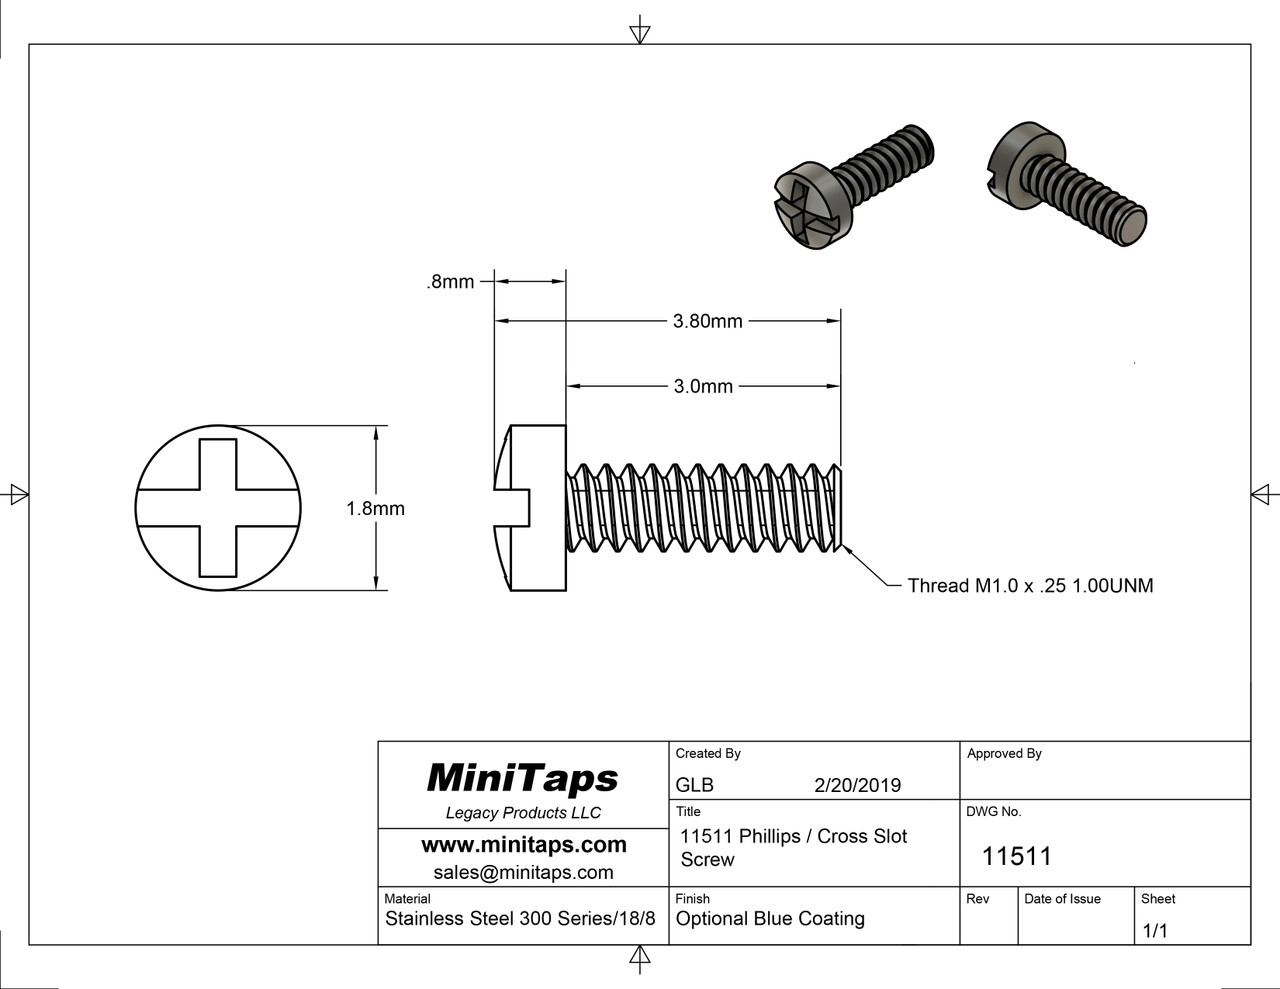 Machine Screw Pan Head Slotted with Phillips (Cross-Recess) Drive Thread M1.0 (1.00UNM,) .25 Pitch Threaded Length 3.0mm Overall Length 3.8mm Head 1.8mm Stainless Steel, Silver Finish. Made on precision screw machines. Price is for 100 count package